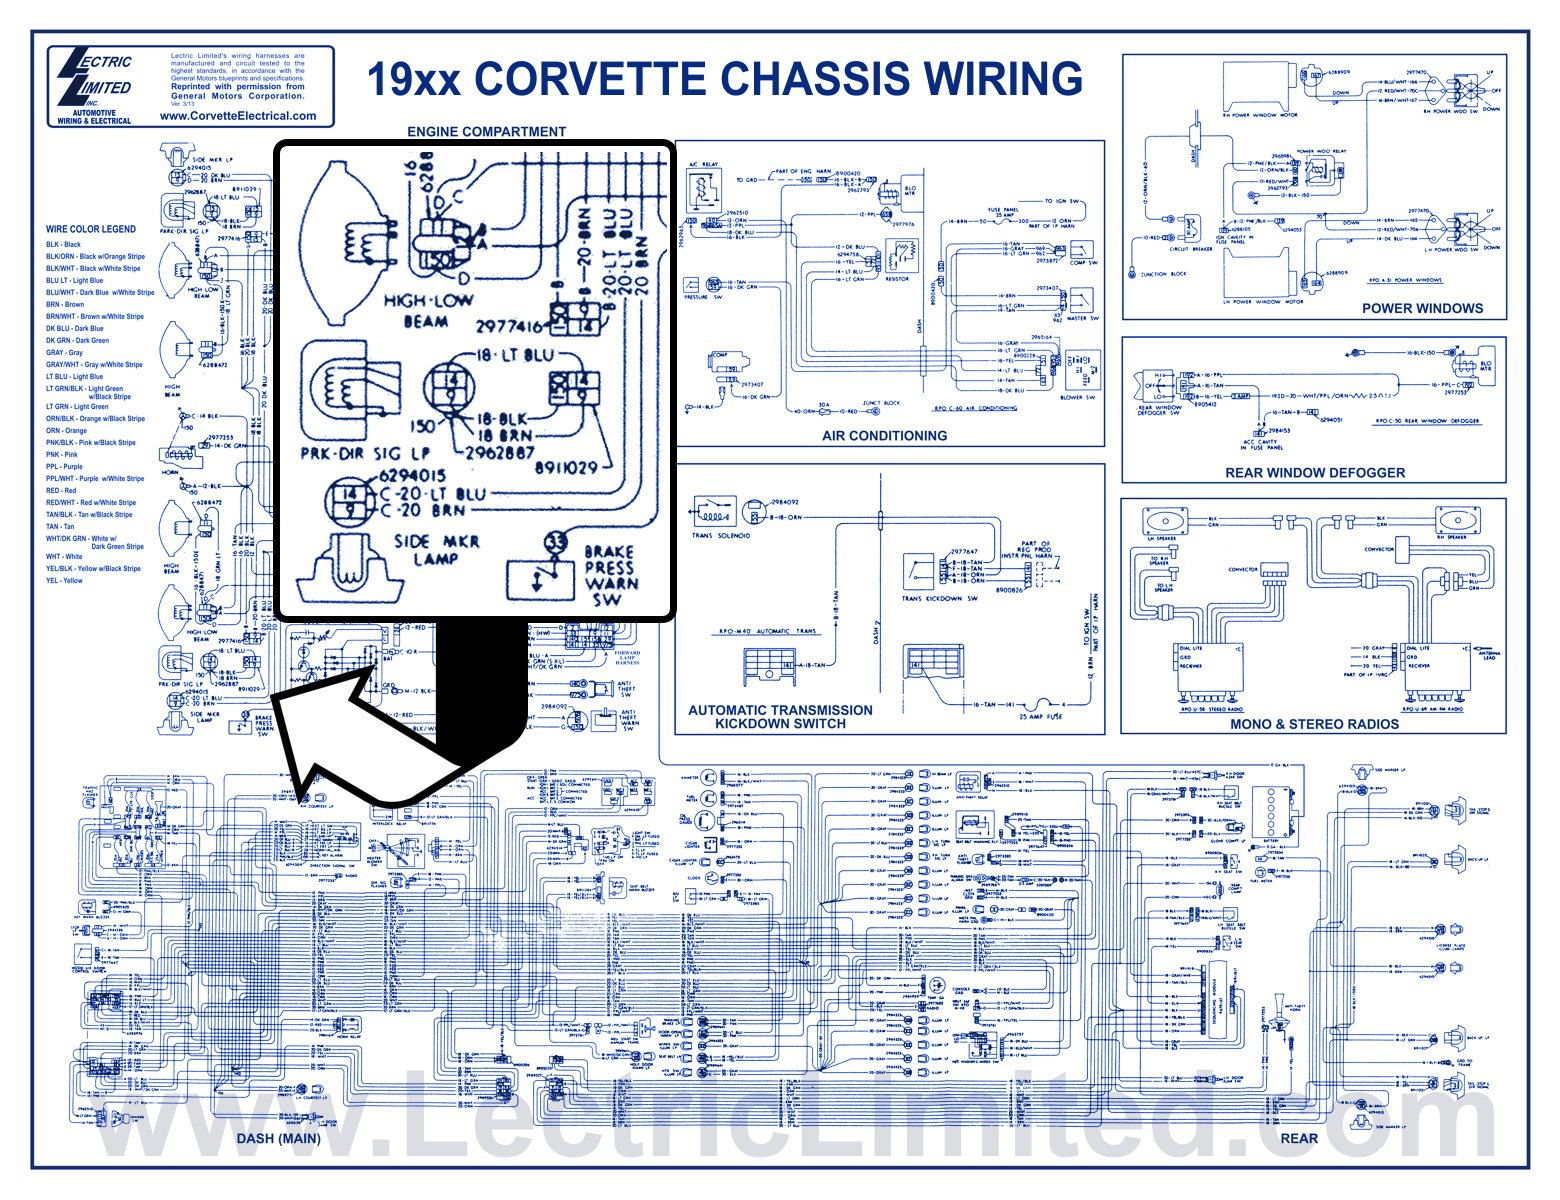 1967 Corvette Wiring Diagram Bookmark About 1968 Schematic Speaker Library Rh 14 18 2 Bitmaineurope De Dash